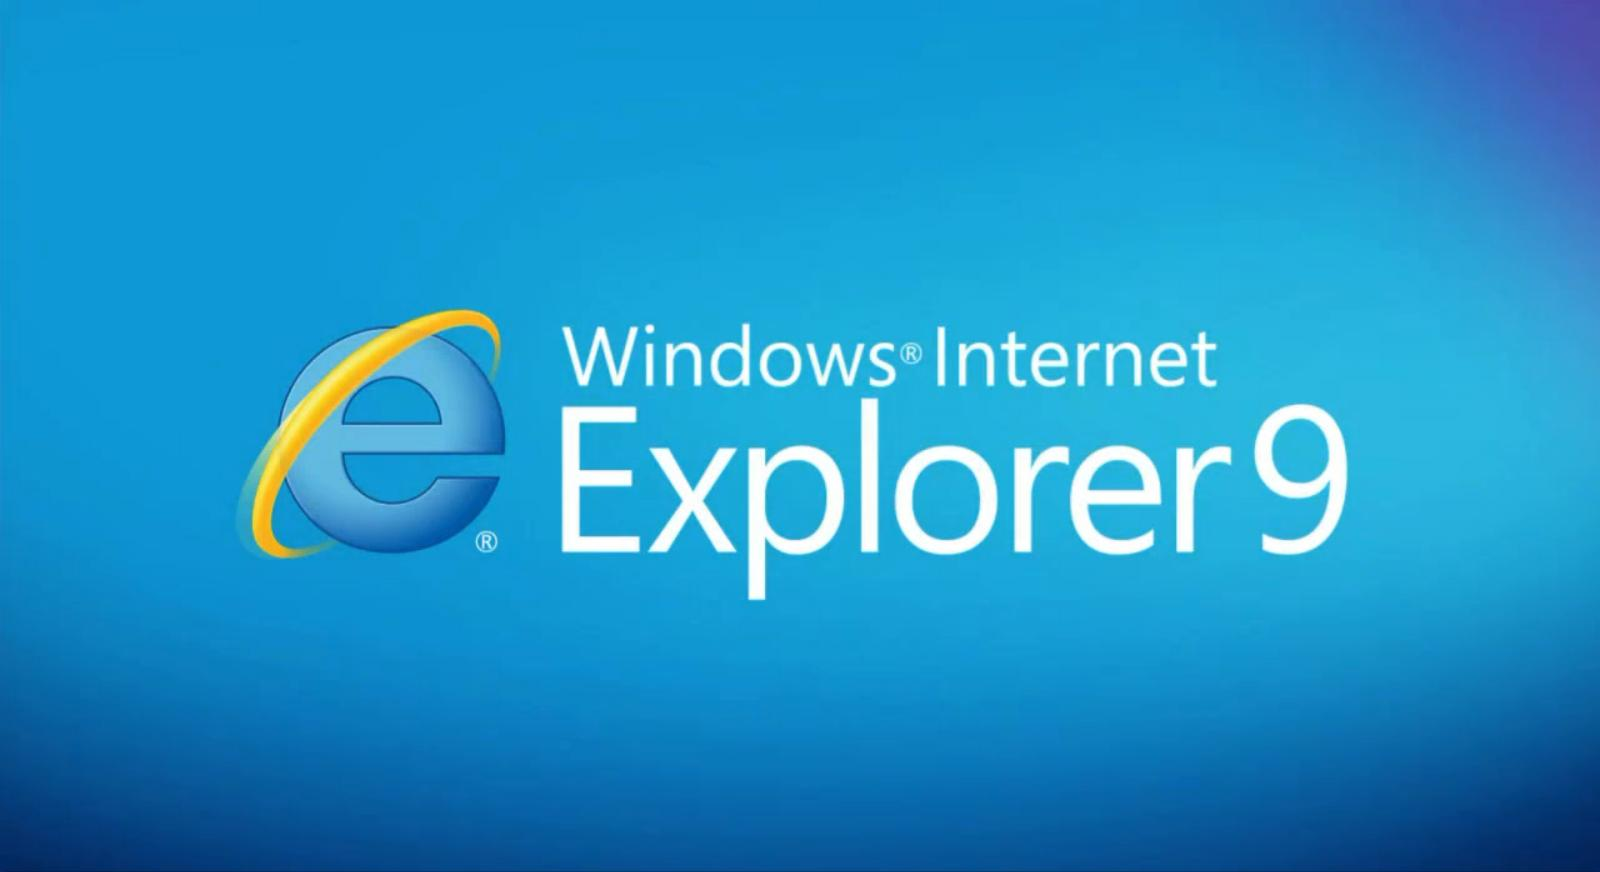 Internet explorer pictures showing red x Internet - Wikipedia